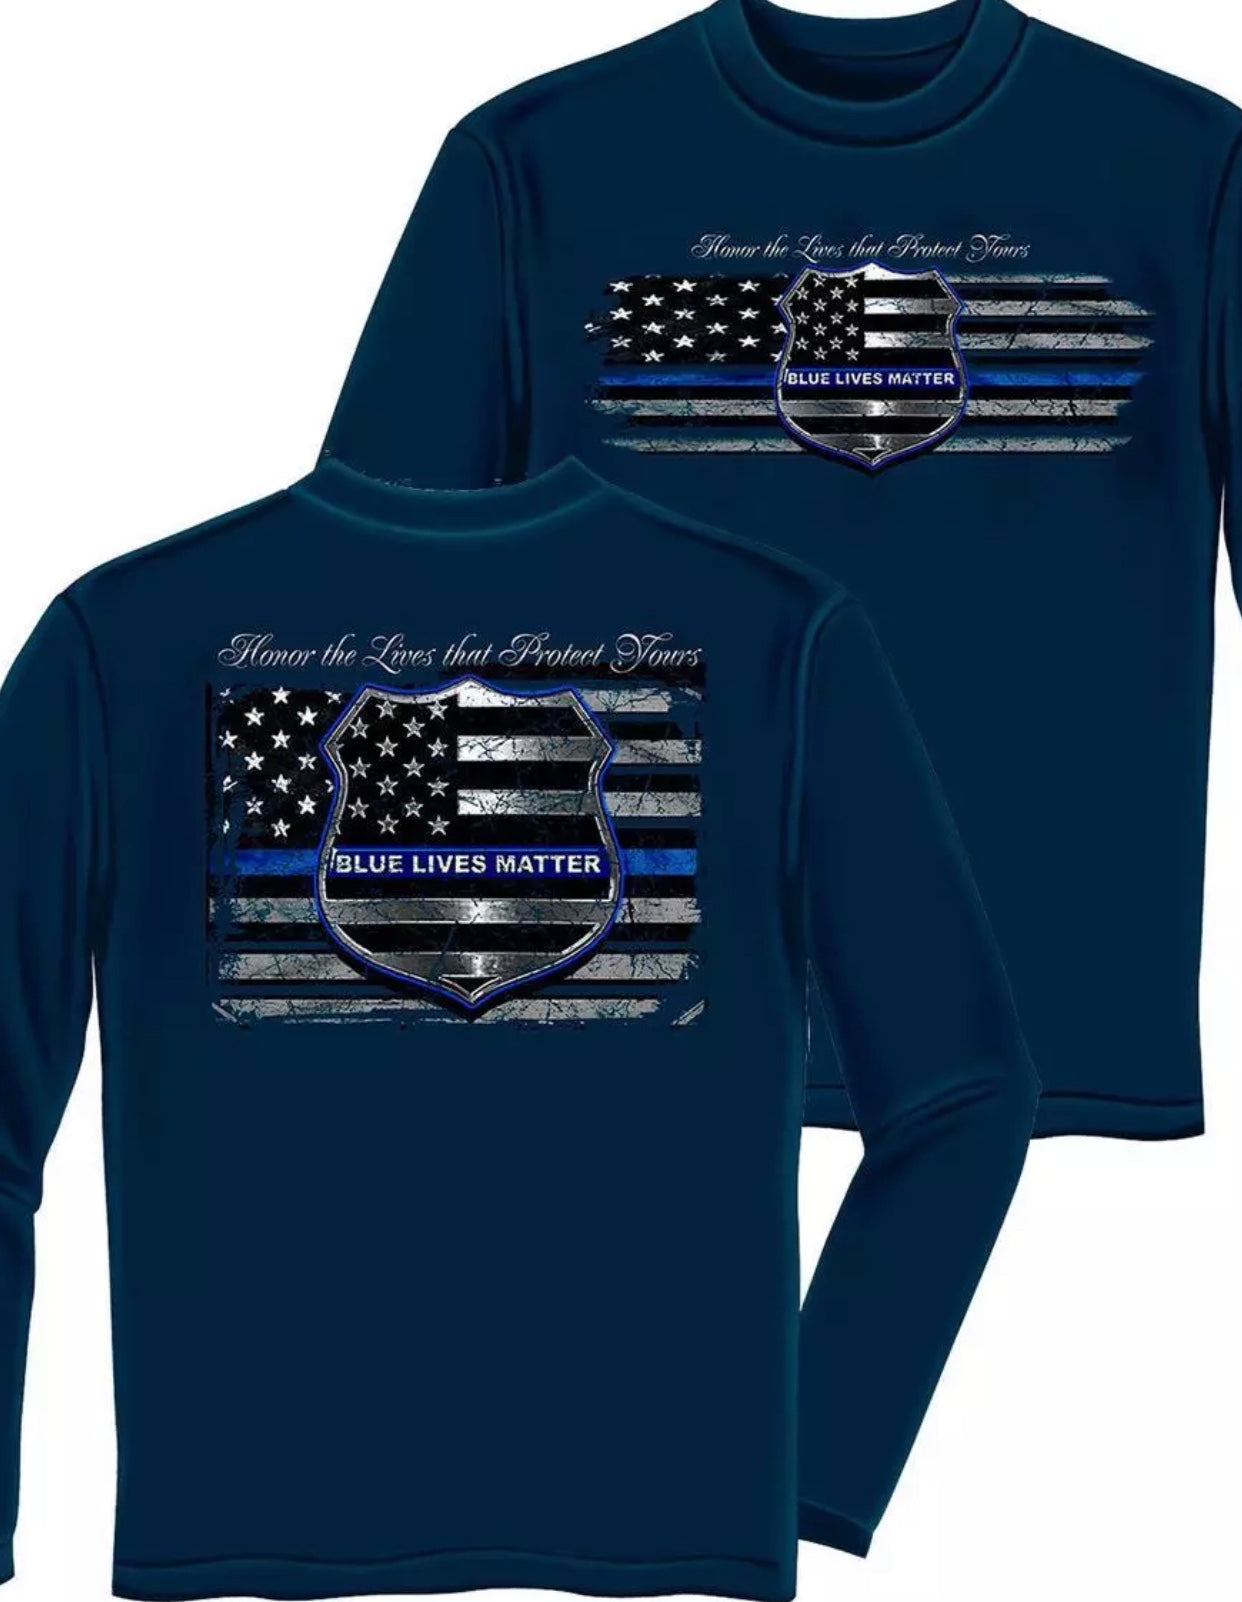 Blue Lives Matter Long Sleeve T-Shirts - The Wall Kids, Inc.